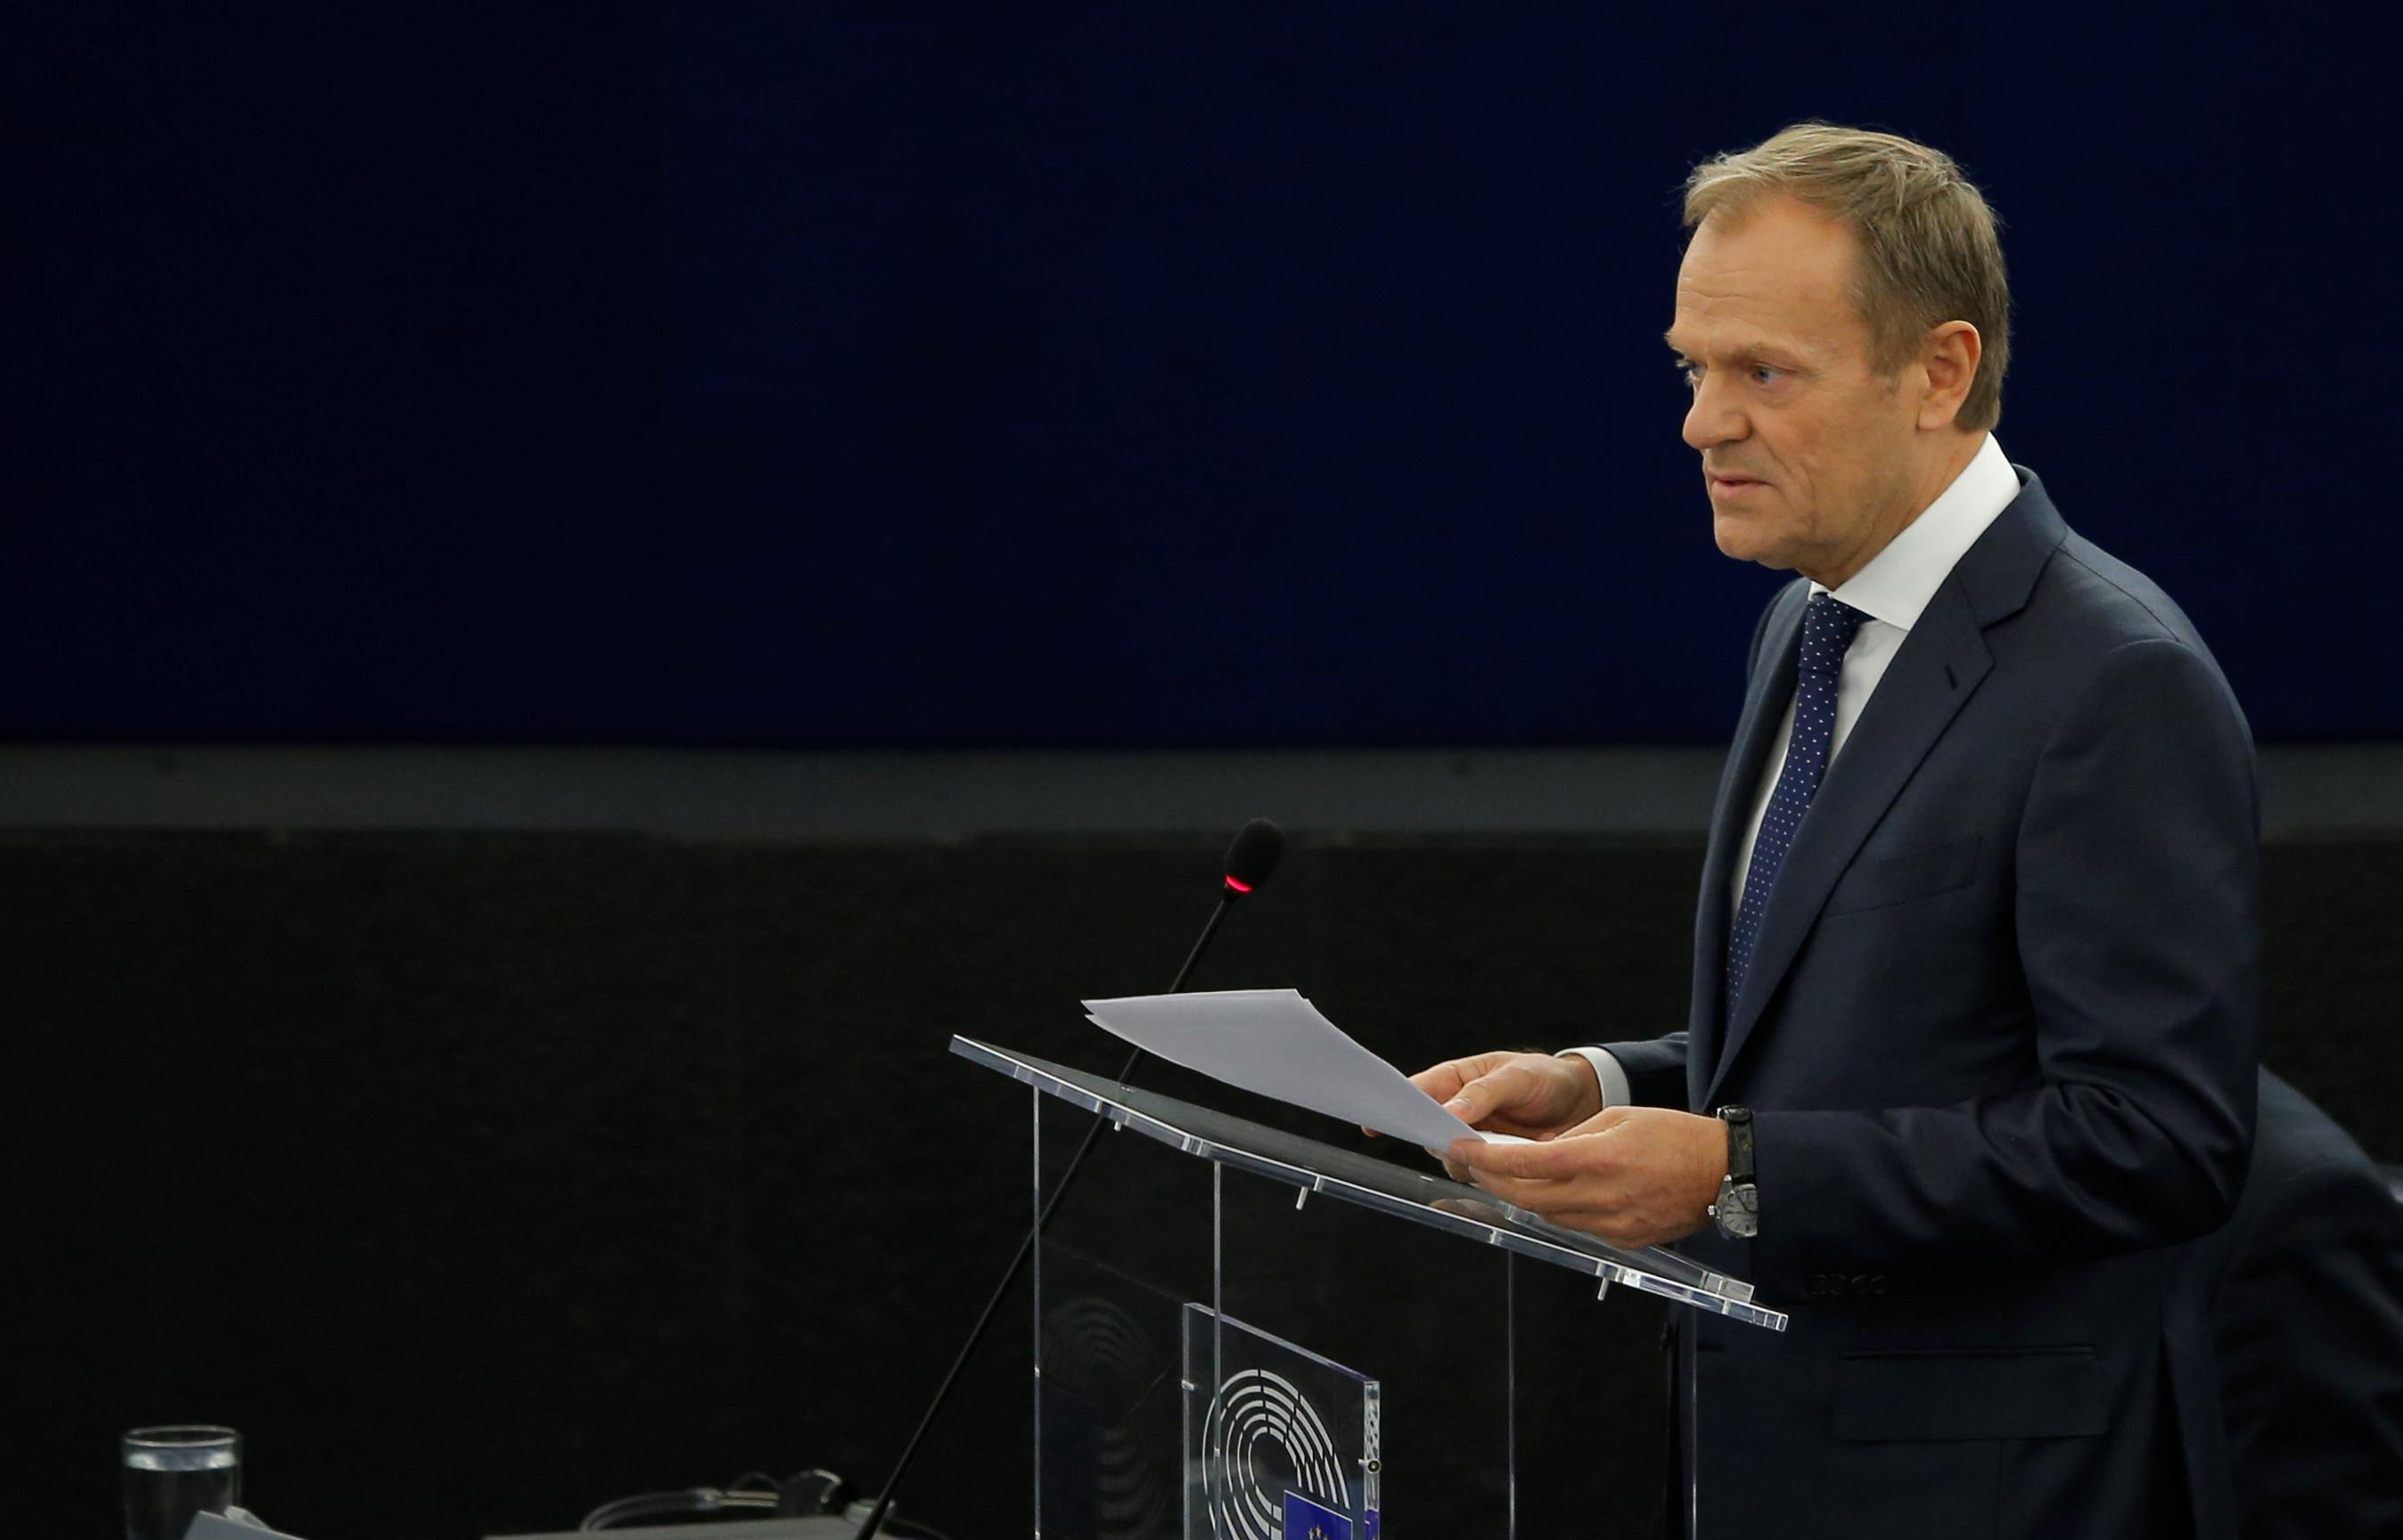 EU's Tusk calls for patience with Britain over Brexit